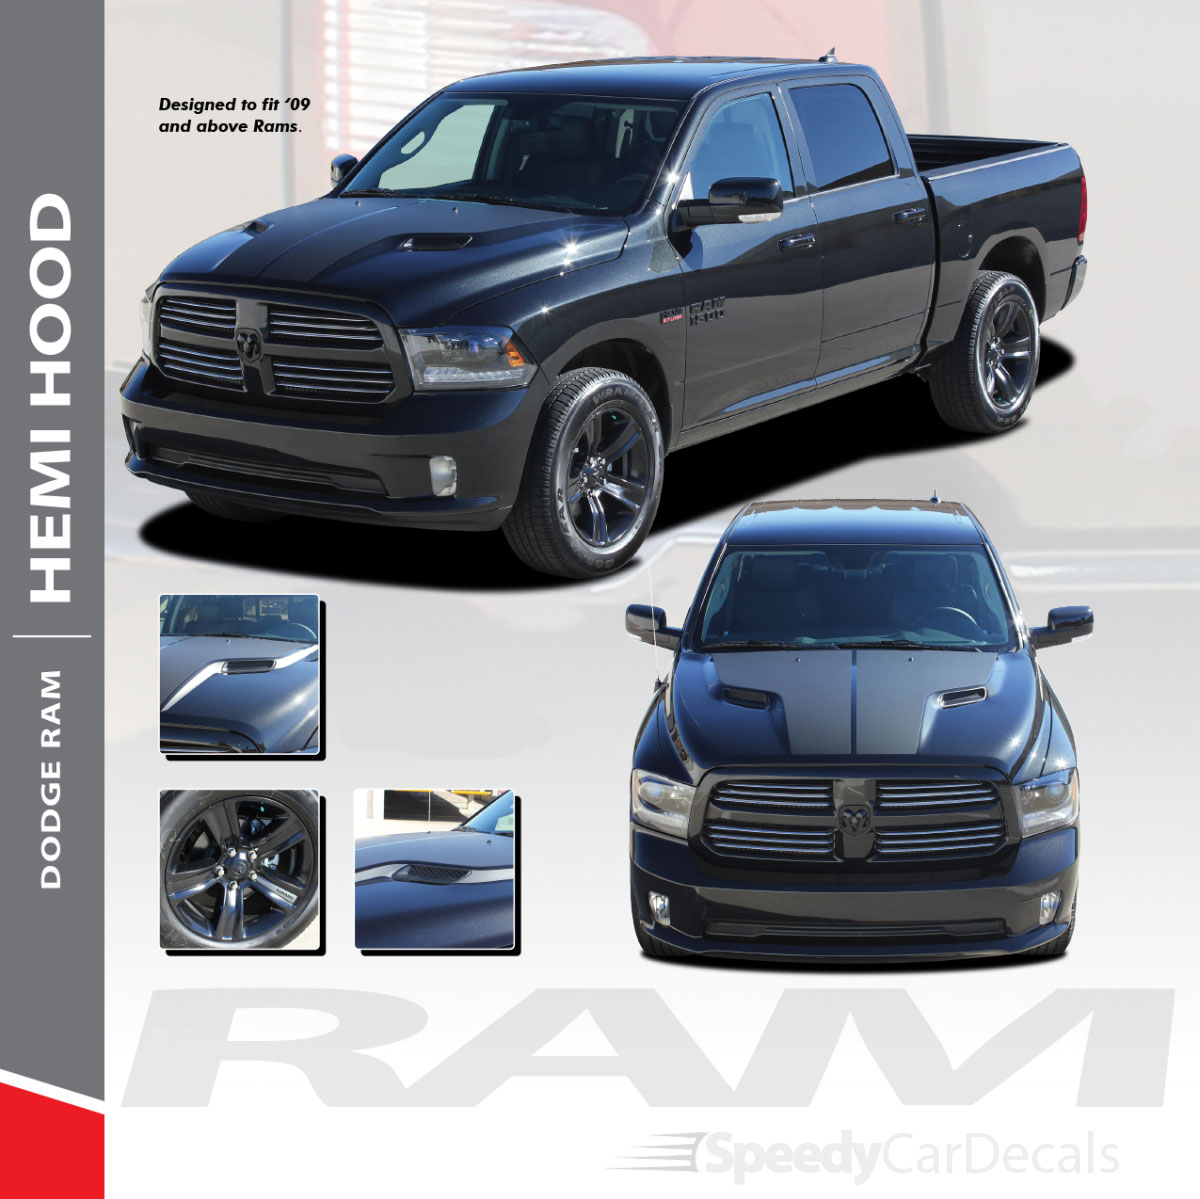 Hemi hood 2009 2018 dodge ram split hood vinyl graphics accent decal stripe kit